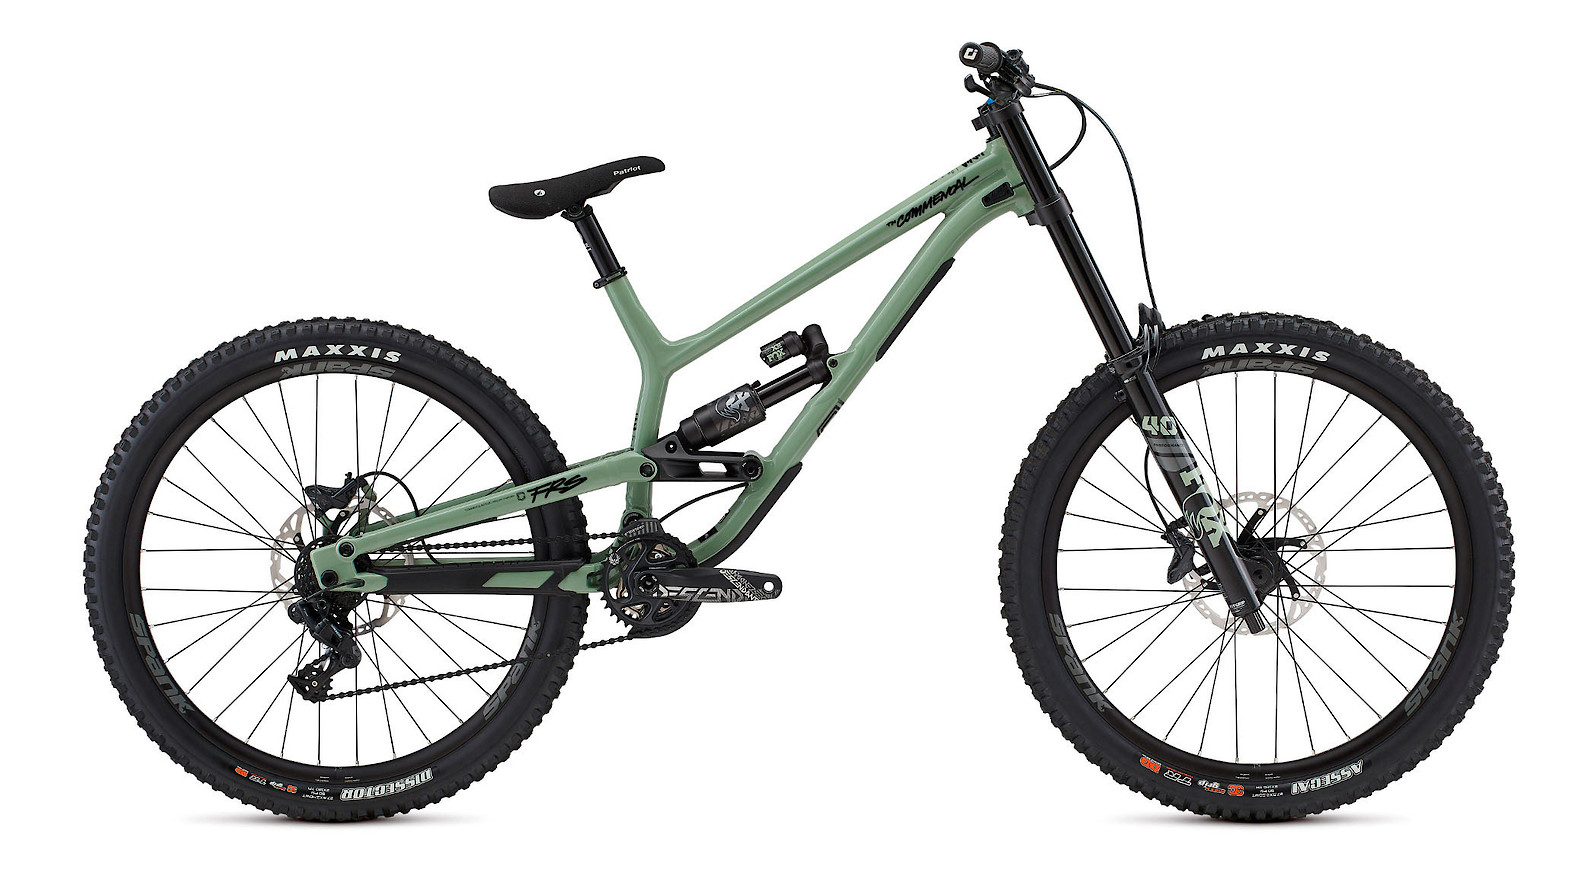 2022 Commencal Furious Essential Heritage Green